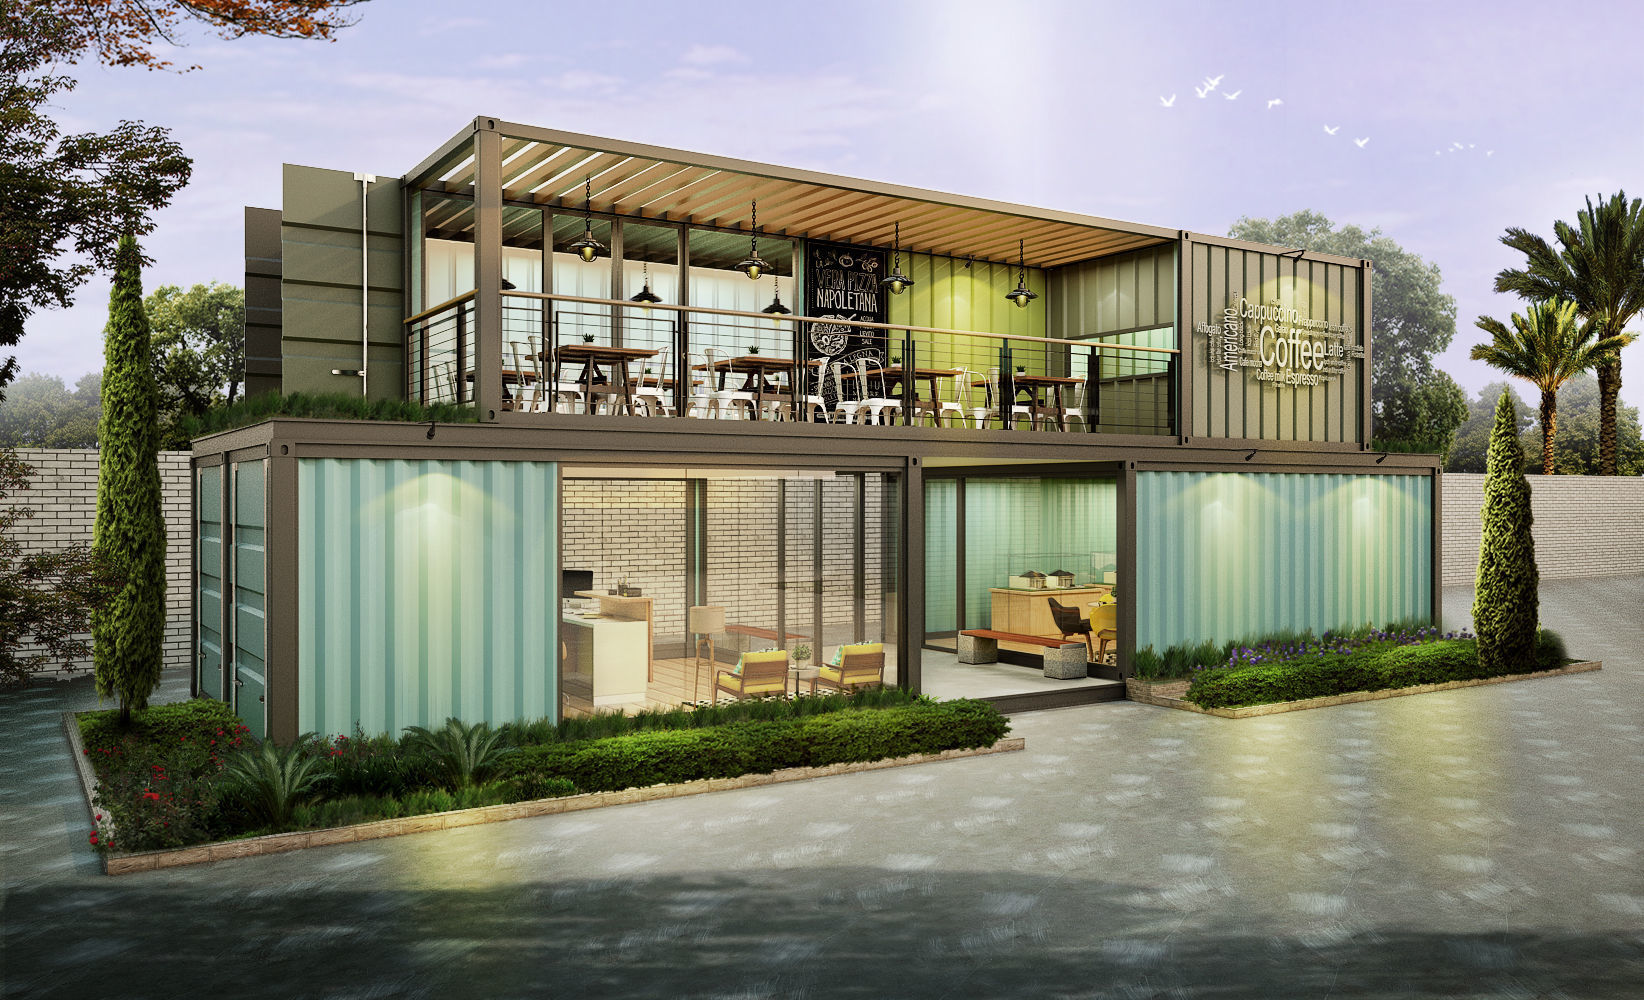 Container Cafe and Office